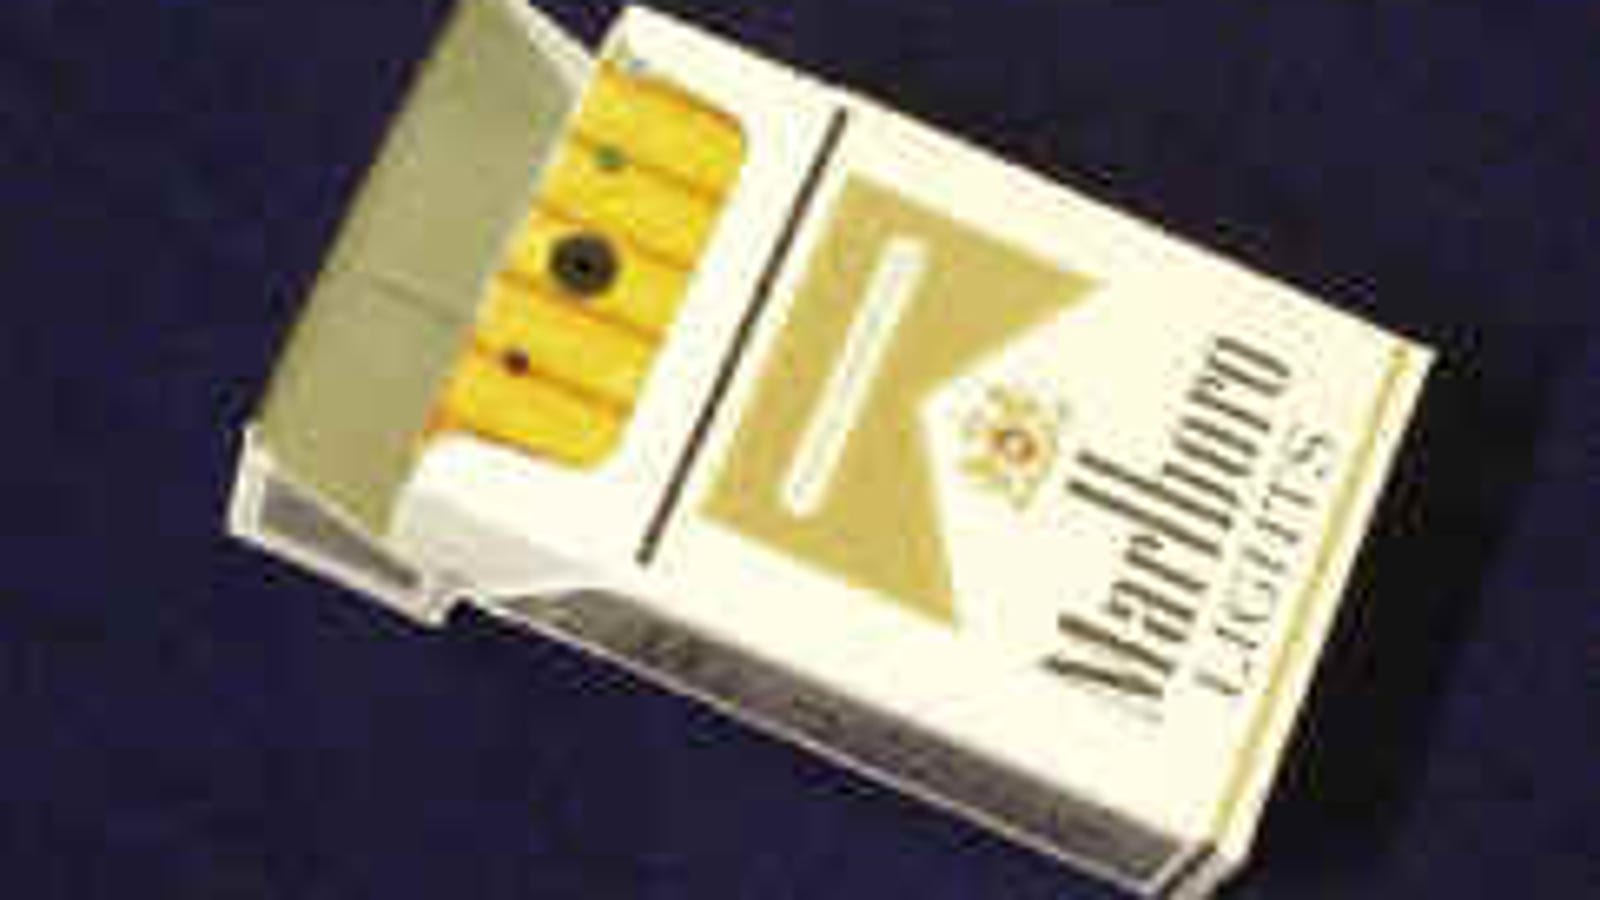 Cell Phone Jammer Disguised as a Pack of Cigarettes